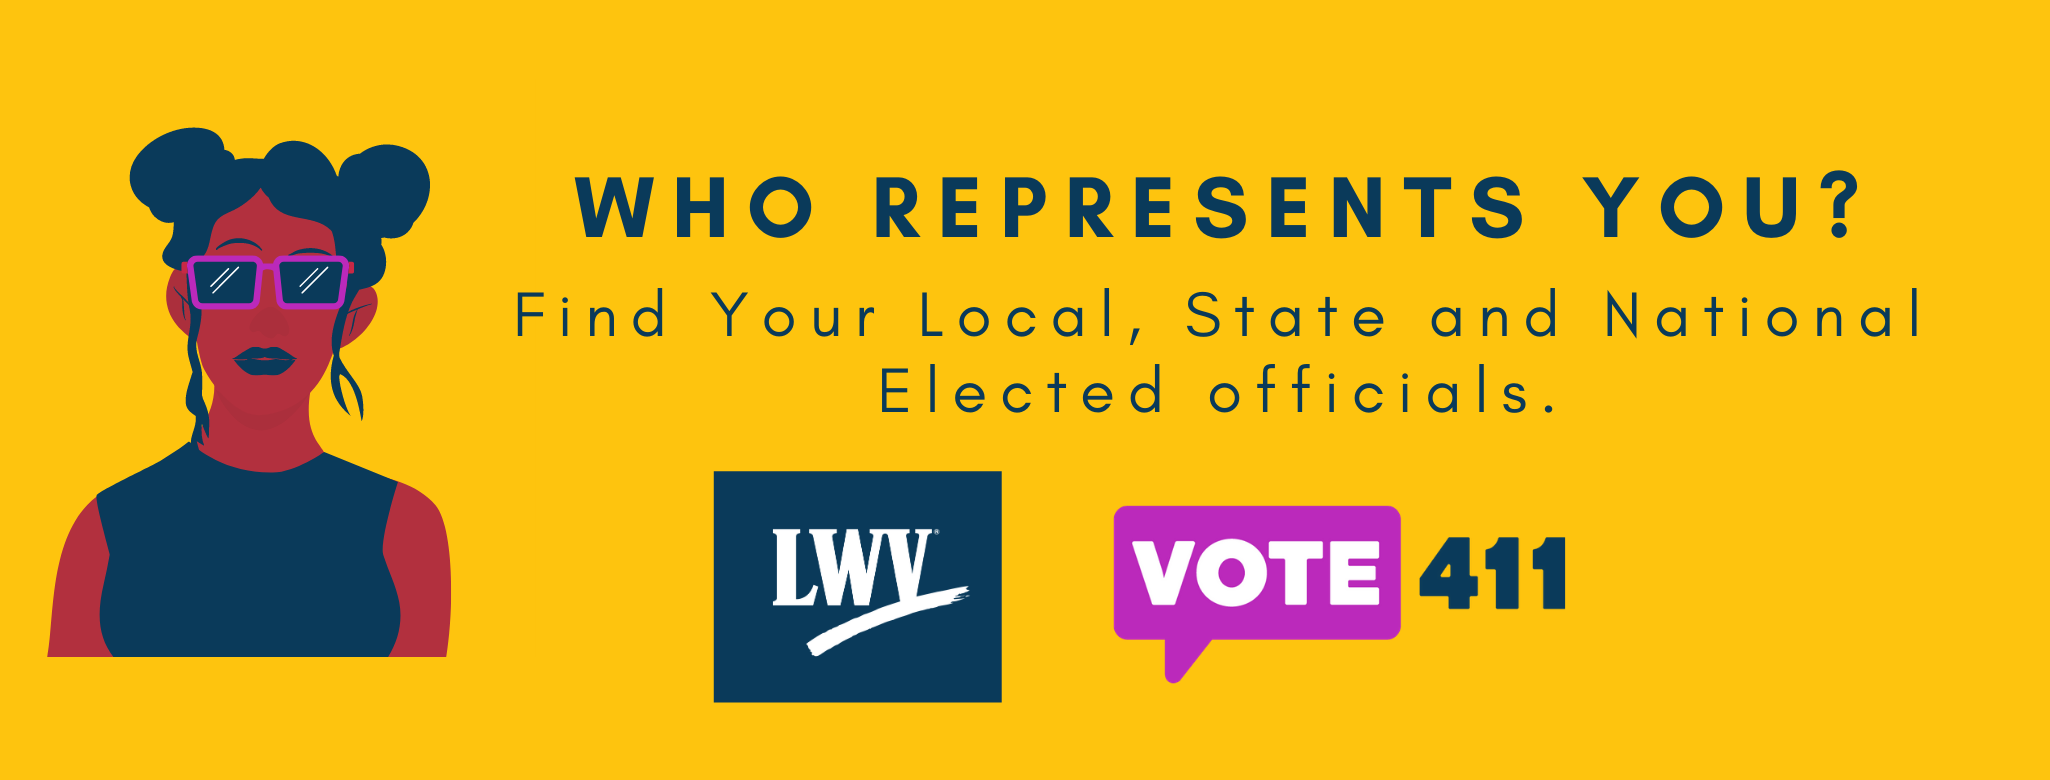 Who represents you?